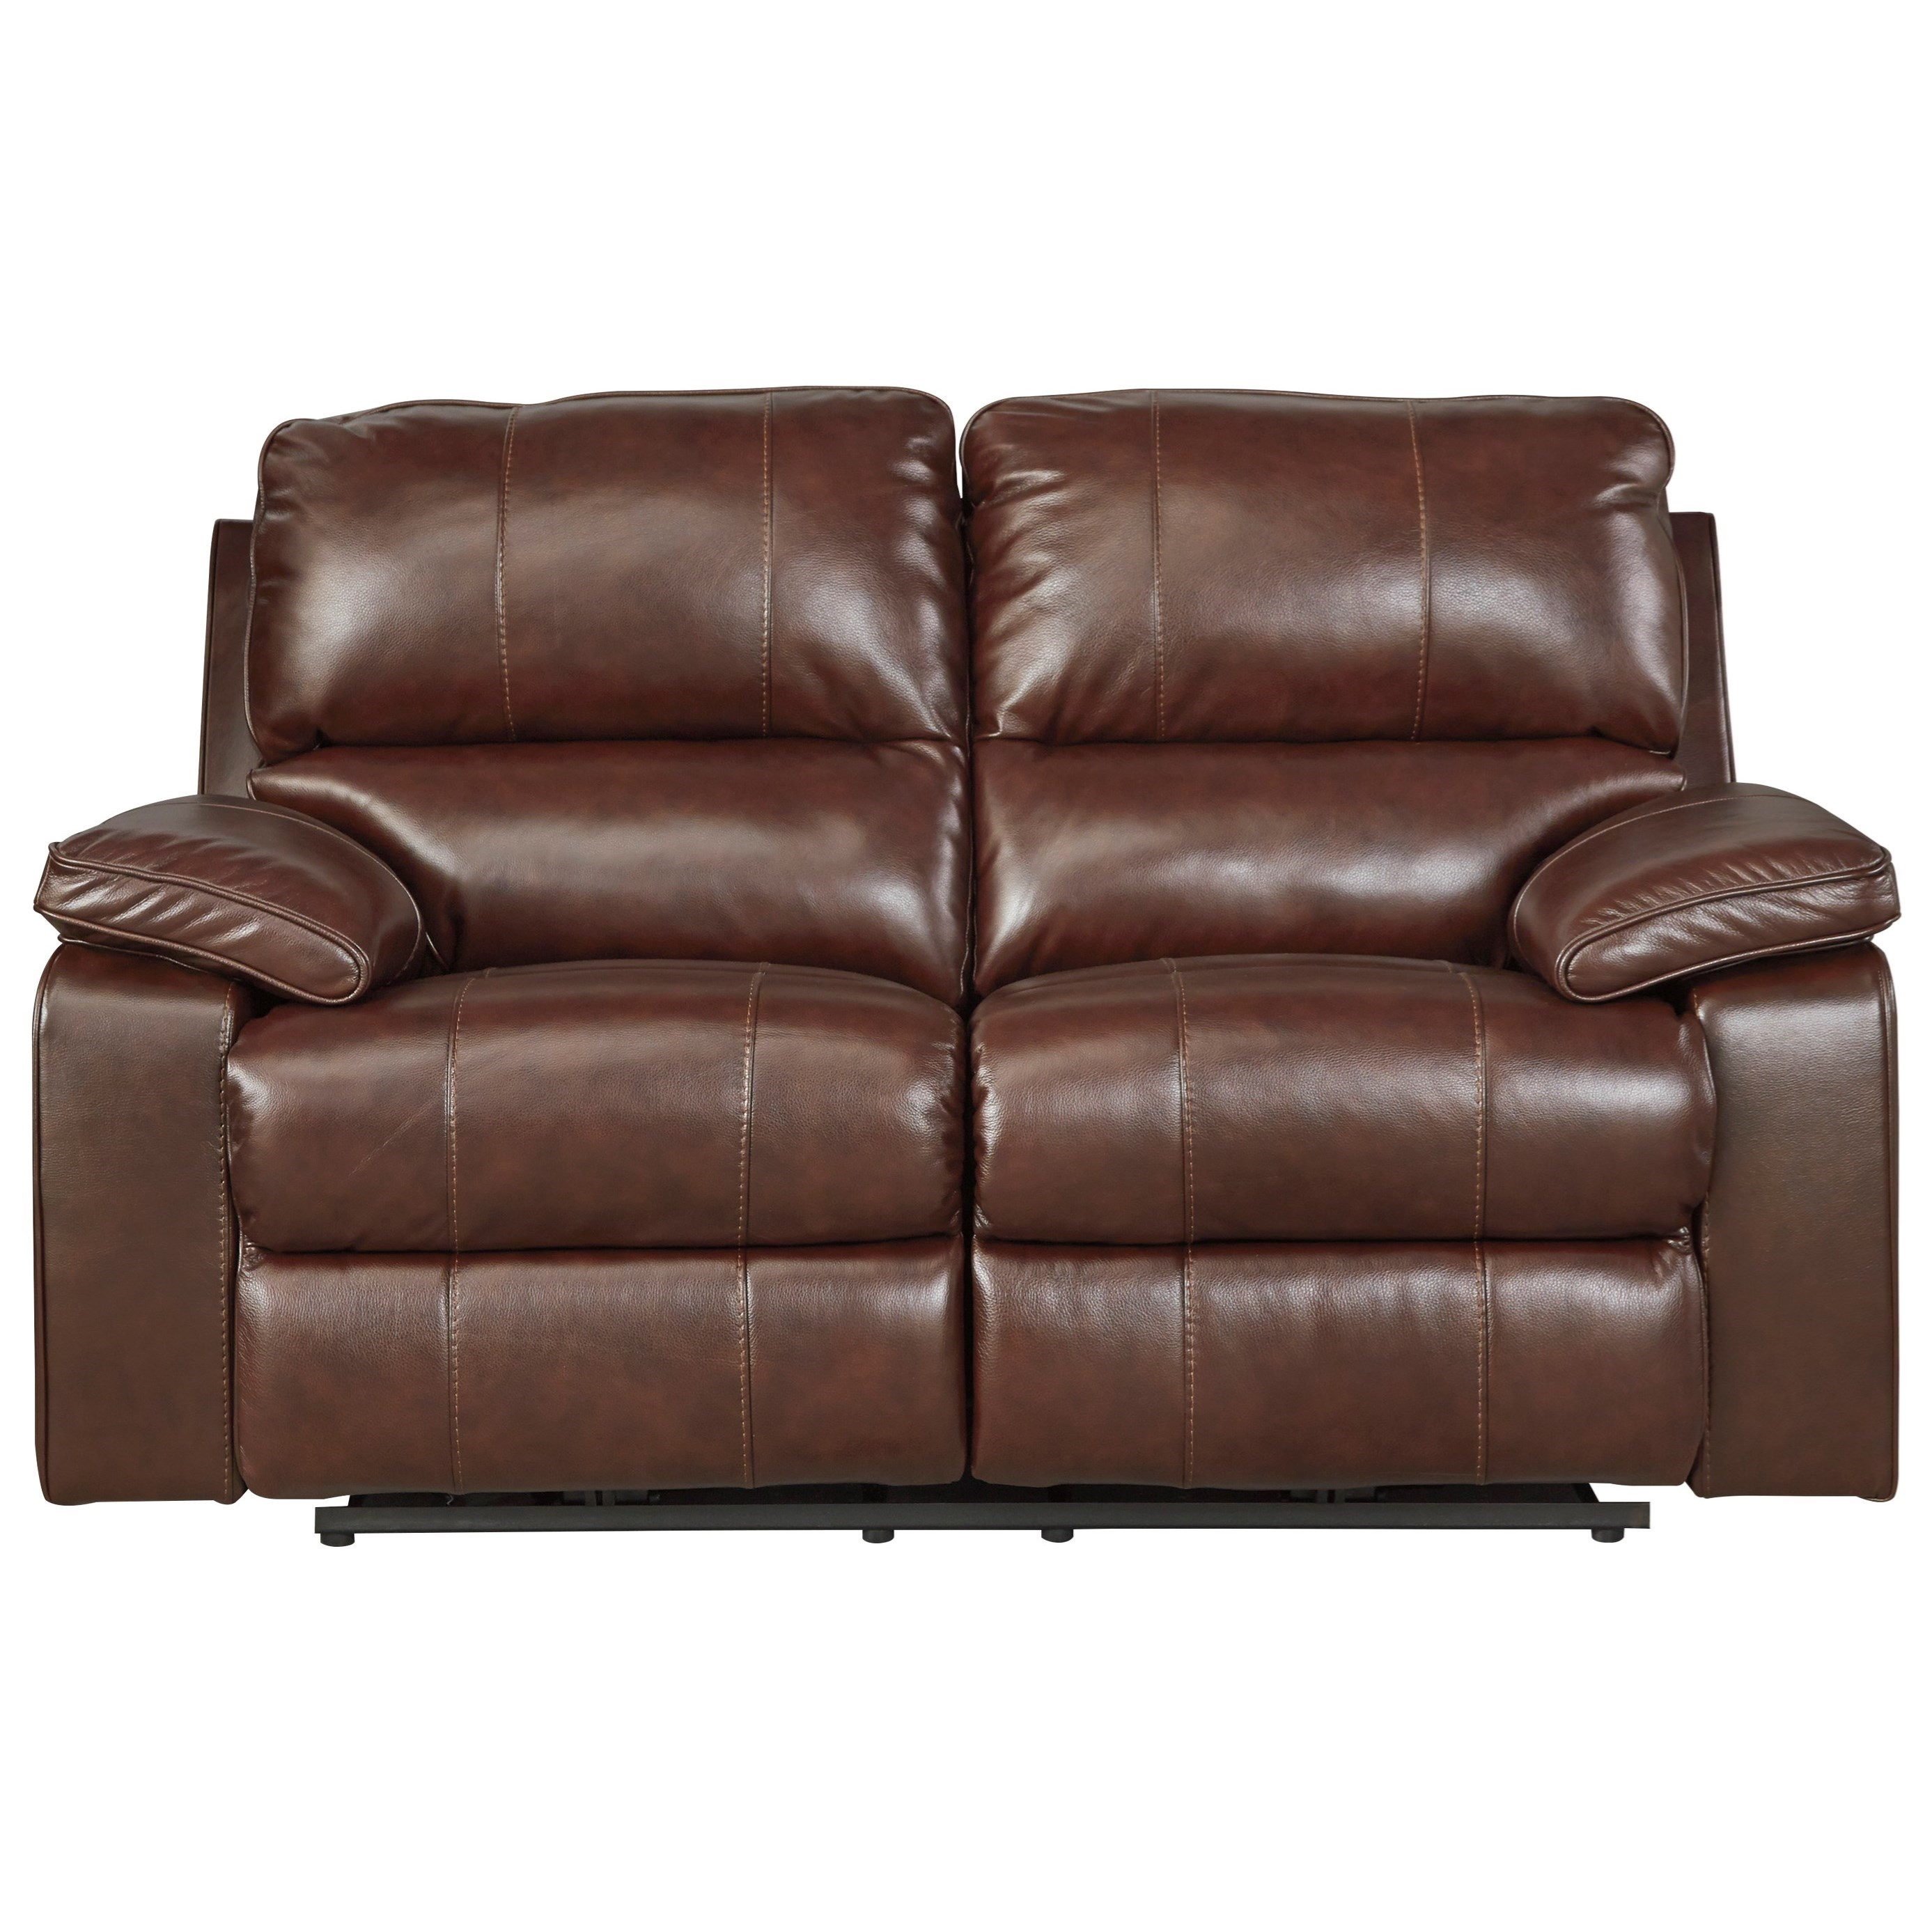 Leather Match Power Reclining Loveseat w/ Adjustable Headrest  sc 1 st  Wolf Furniture & Leather Match Power Reclining Loveseat w/ Adjustable Headrest by ... islam-shia.org